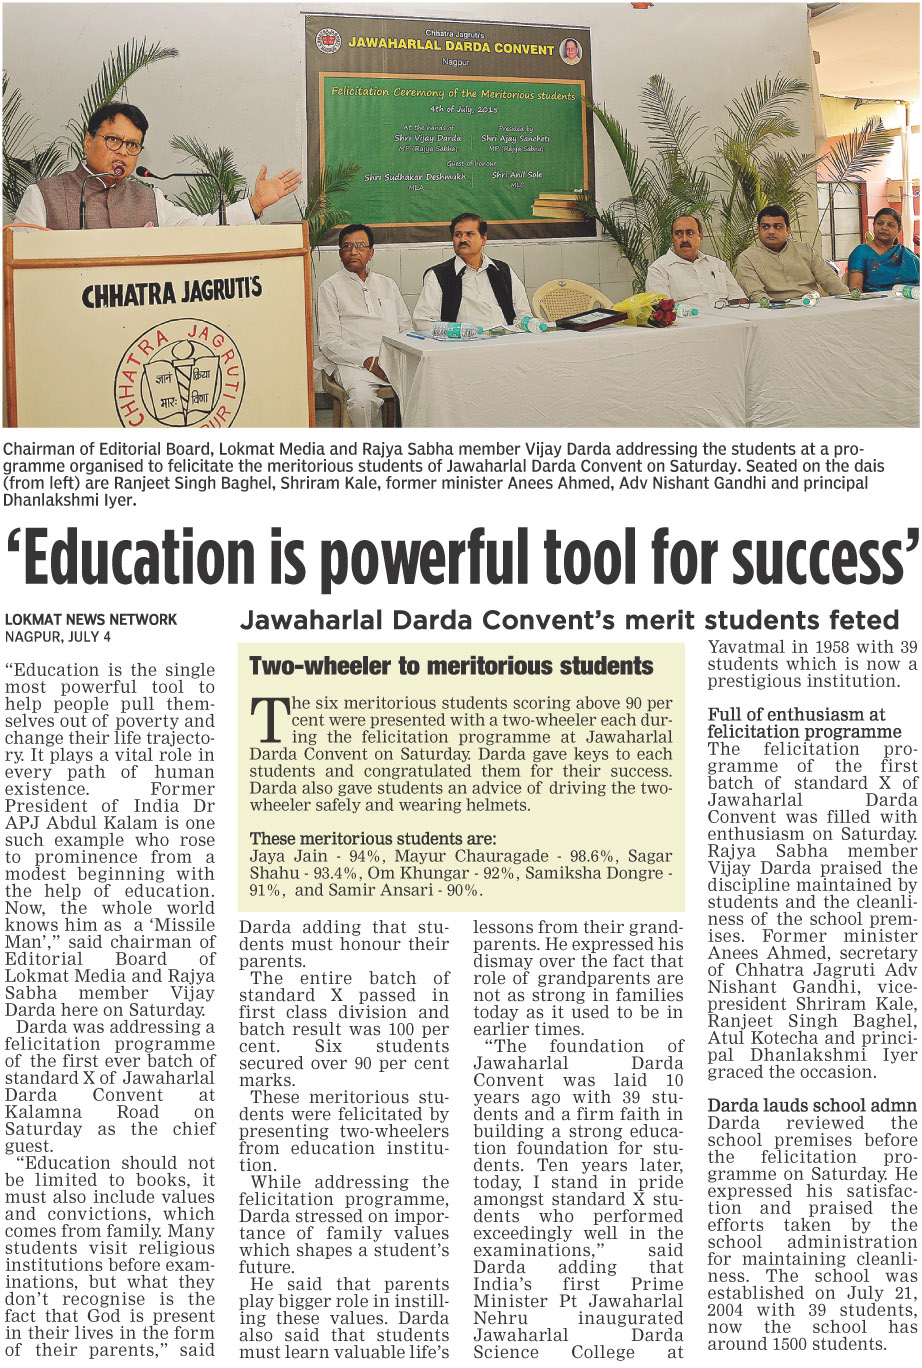 'Education is powerful tool for success'